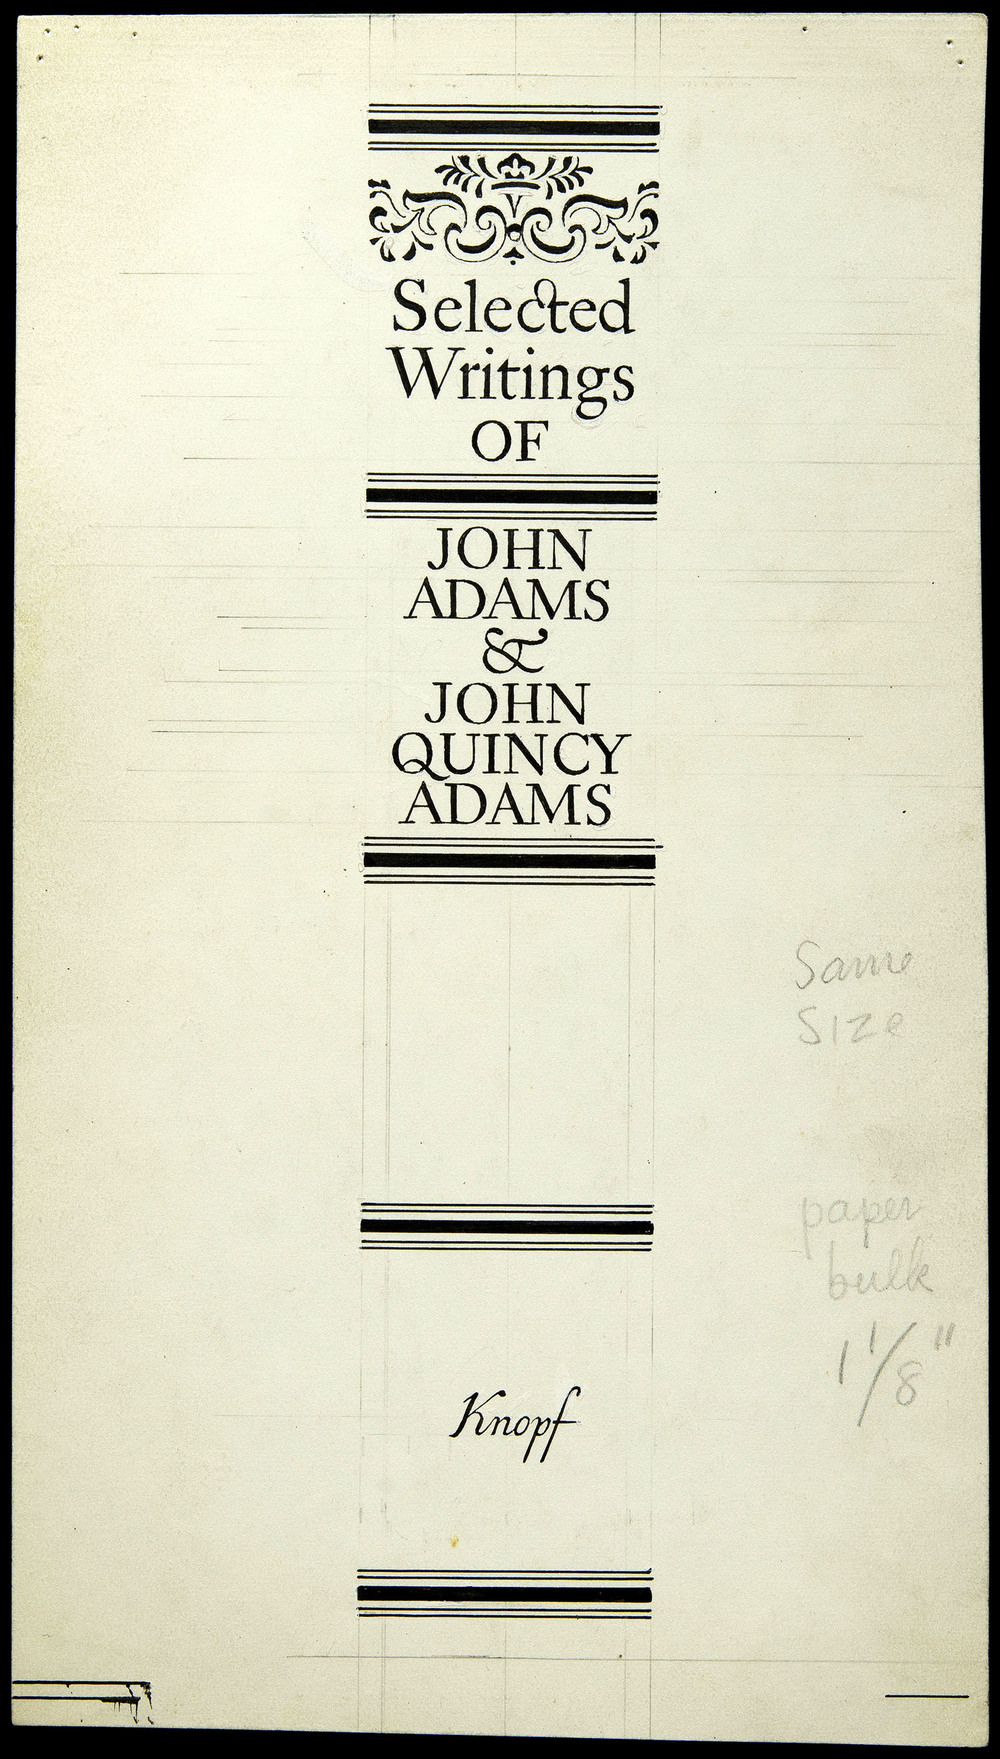 Original art for shelf back,  Selected Writings of John Adams , Knopf, New York, 1946, 13.5 x 24 cm